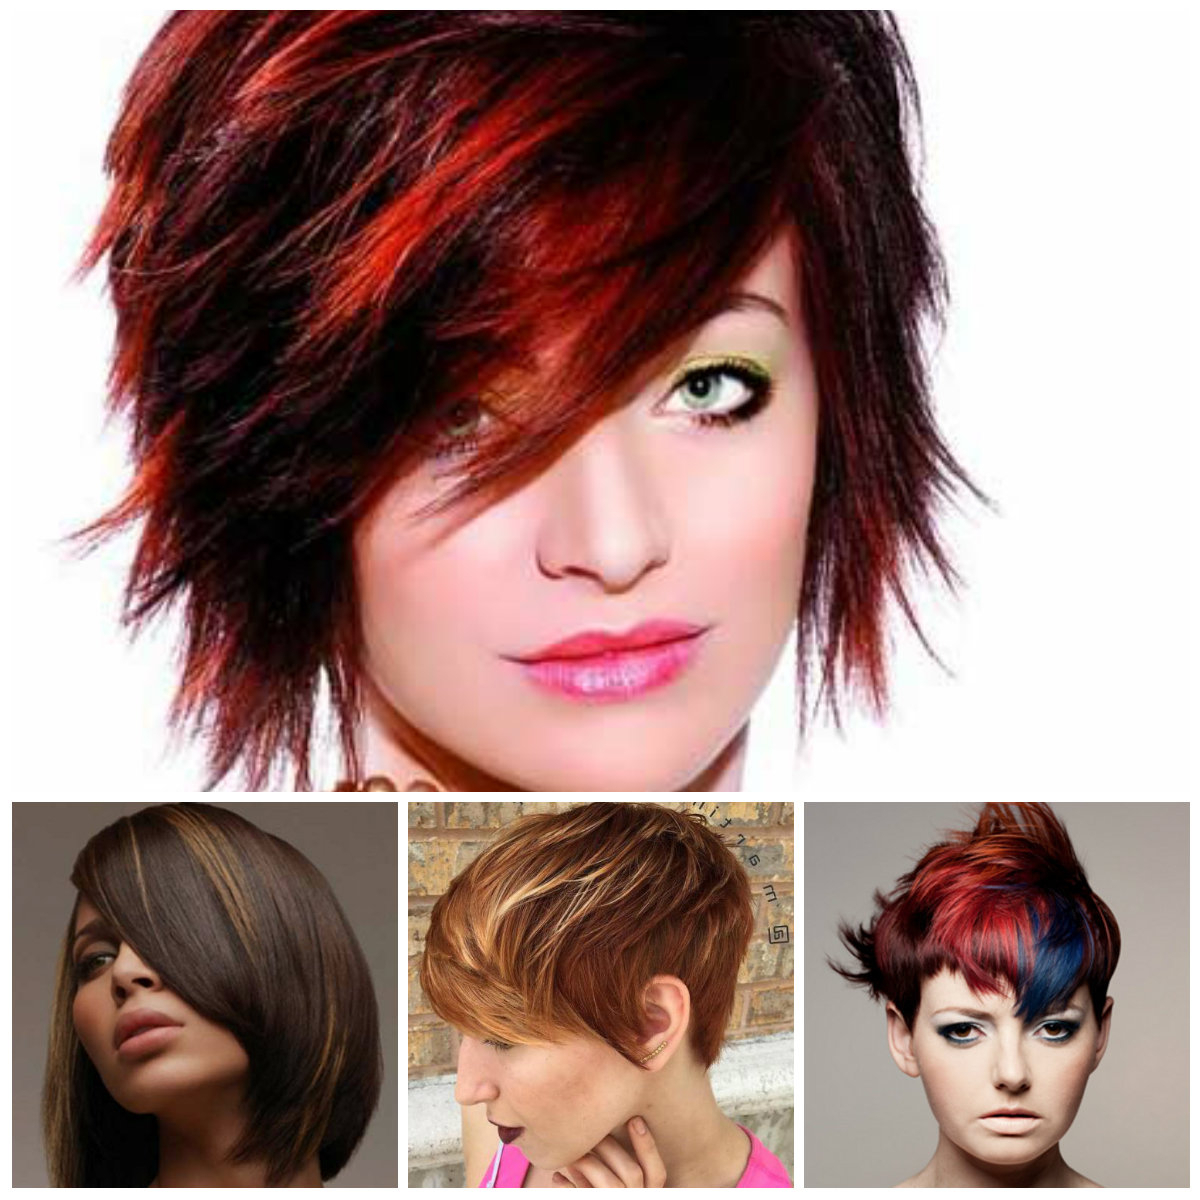 Short Hairstyles With Trendy Highlights 2018 – Best Hairstyle Models For Short Hairstyles And Highlights (View 6 of 25)